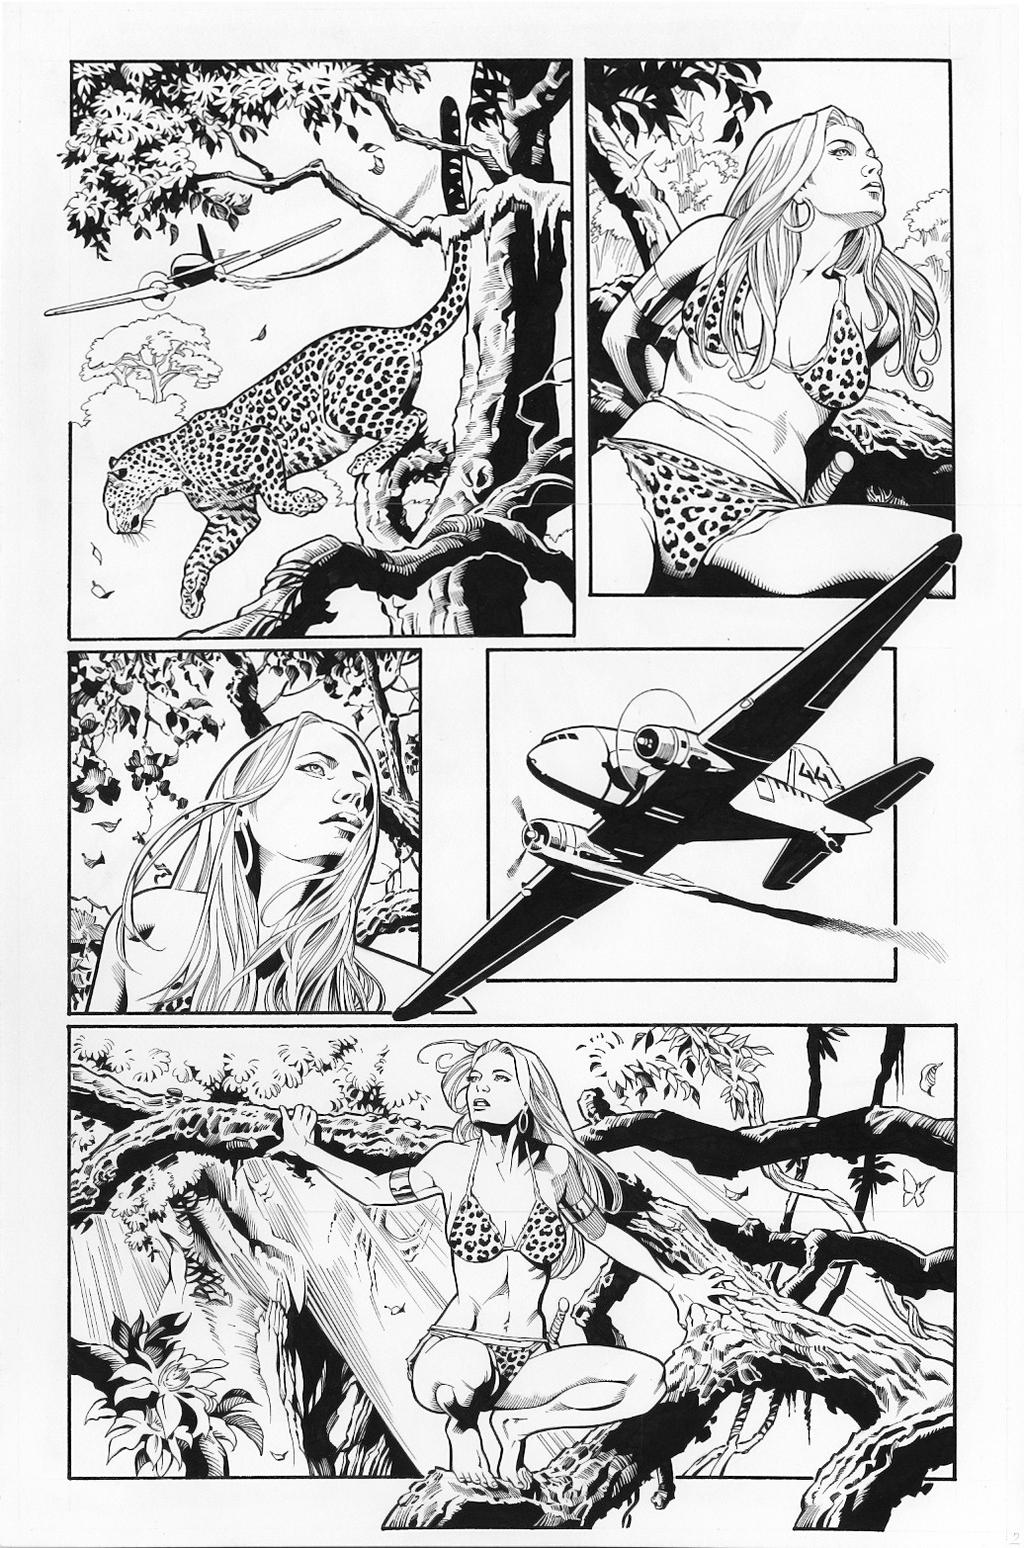 Sheena, Queen of the Jungle is a fictional American comic book jungle girl heroine, originally published primarily by Fiction House.